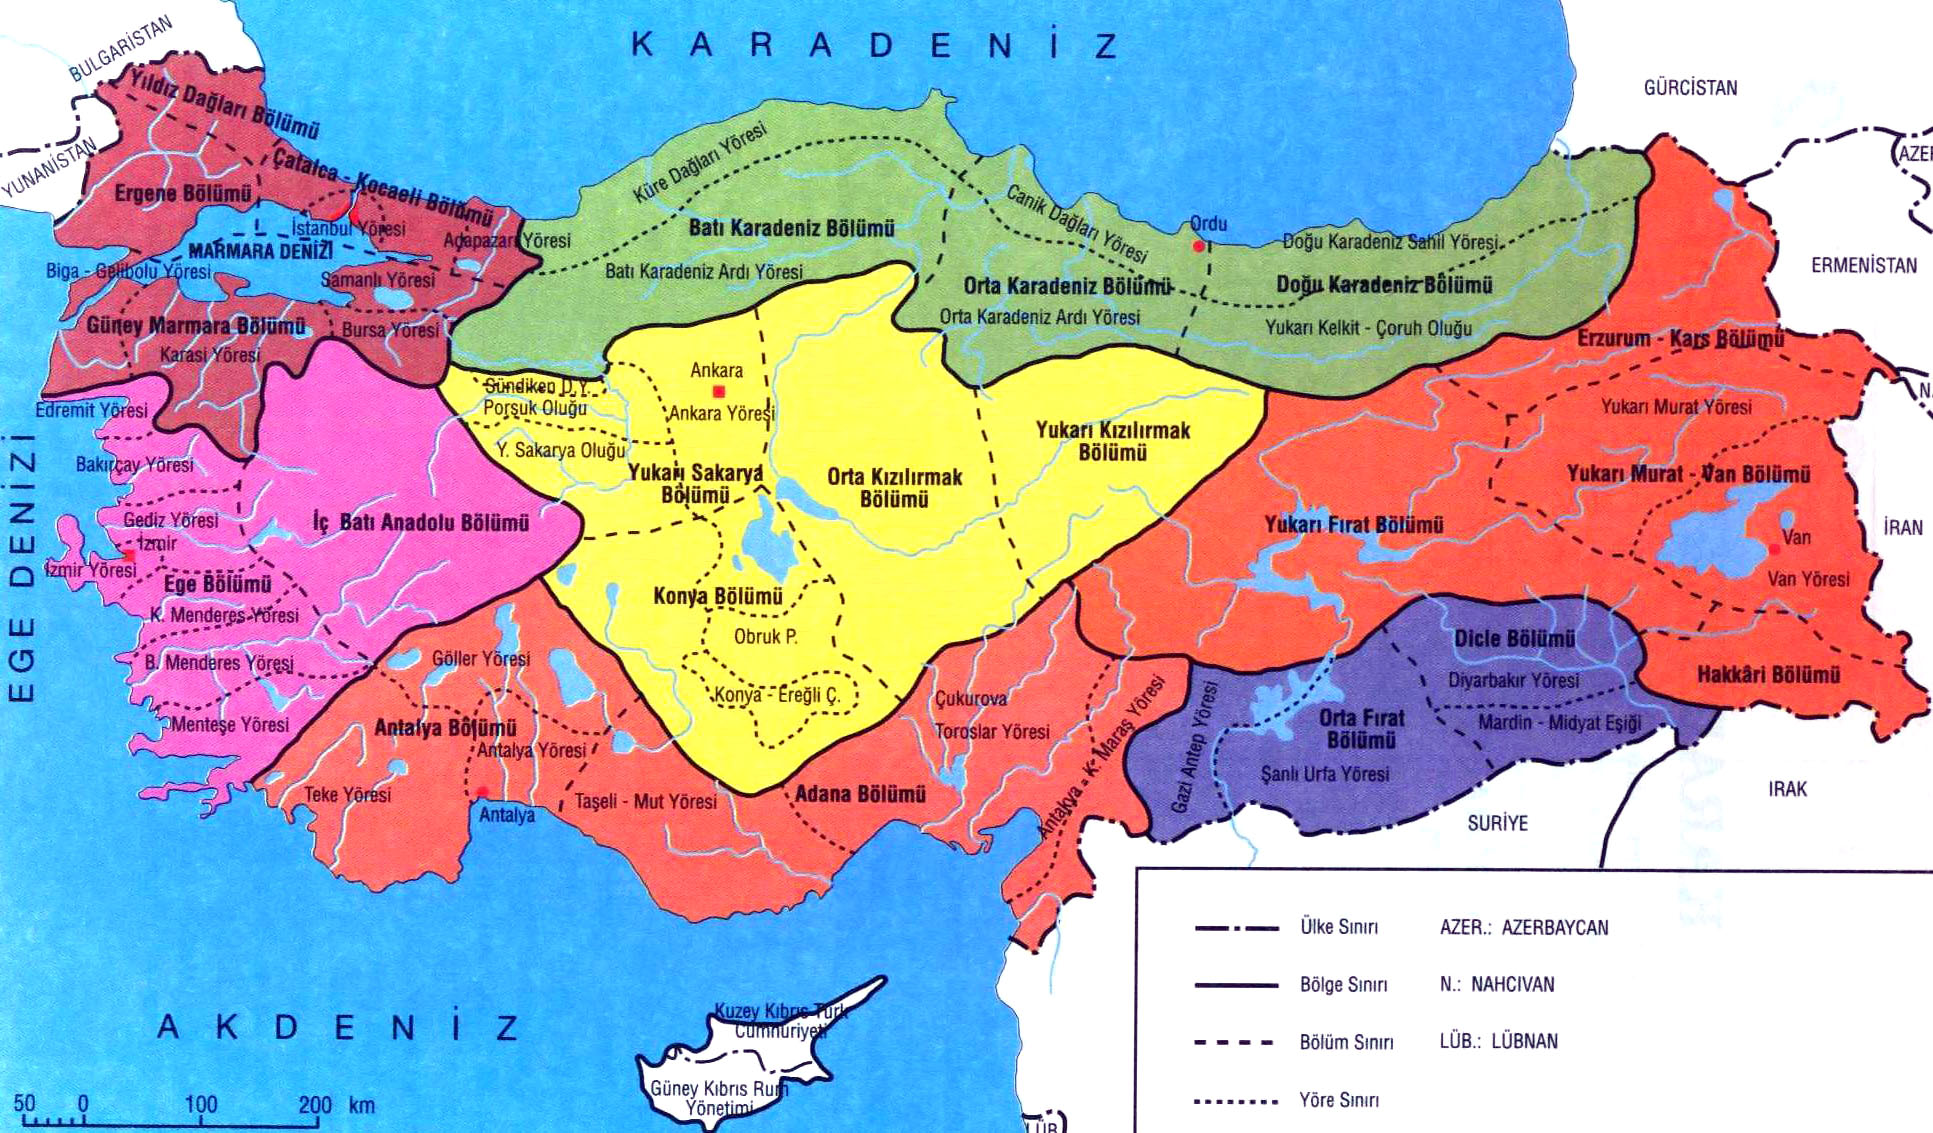 turkistan map with Turkiye Bolgelere Gore Maden Haritasi on Hypertension Drugs likewise Jund Al Aqsa Uses Drone To Drop Small Bomb On Syrian Regime Forces furthermore 42291 in addition 1116799 also List of sovereign states in 1768.